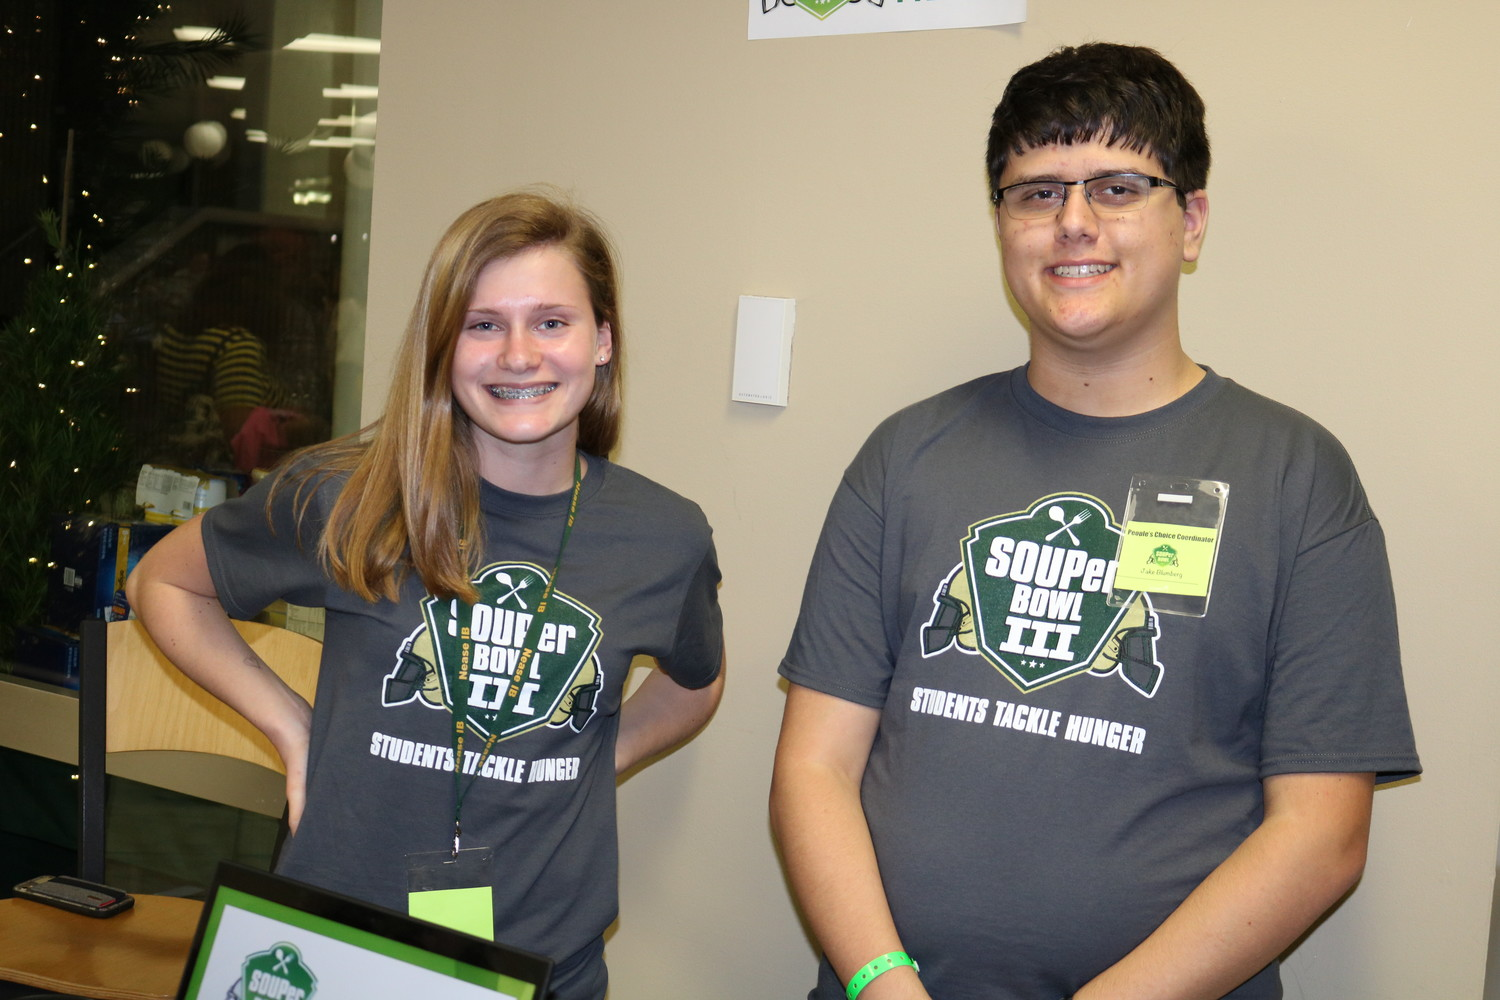 Volunteers Nell Crlenjak and Jake Blumberg